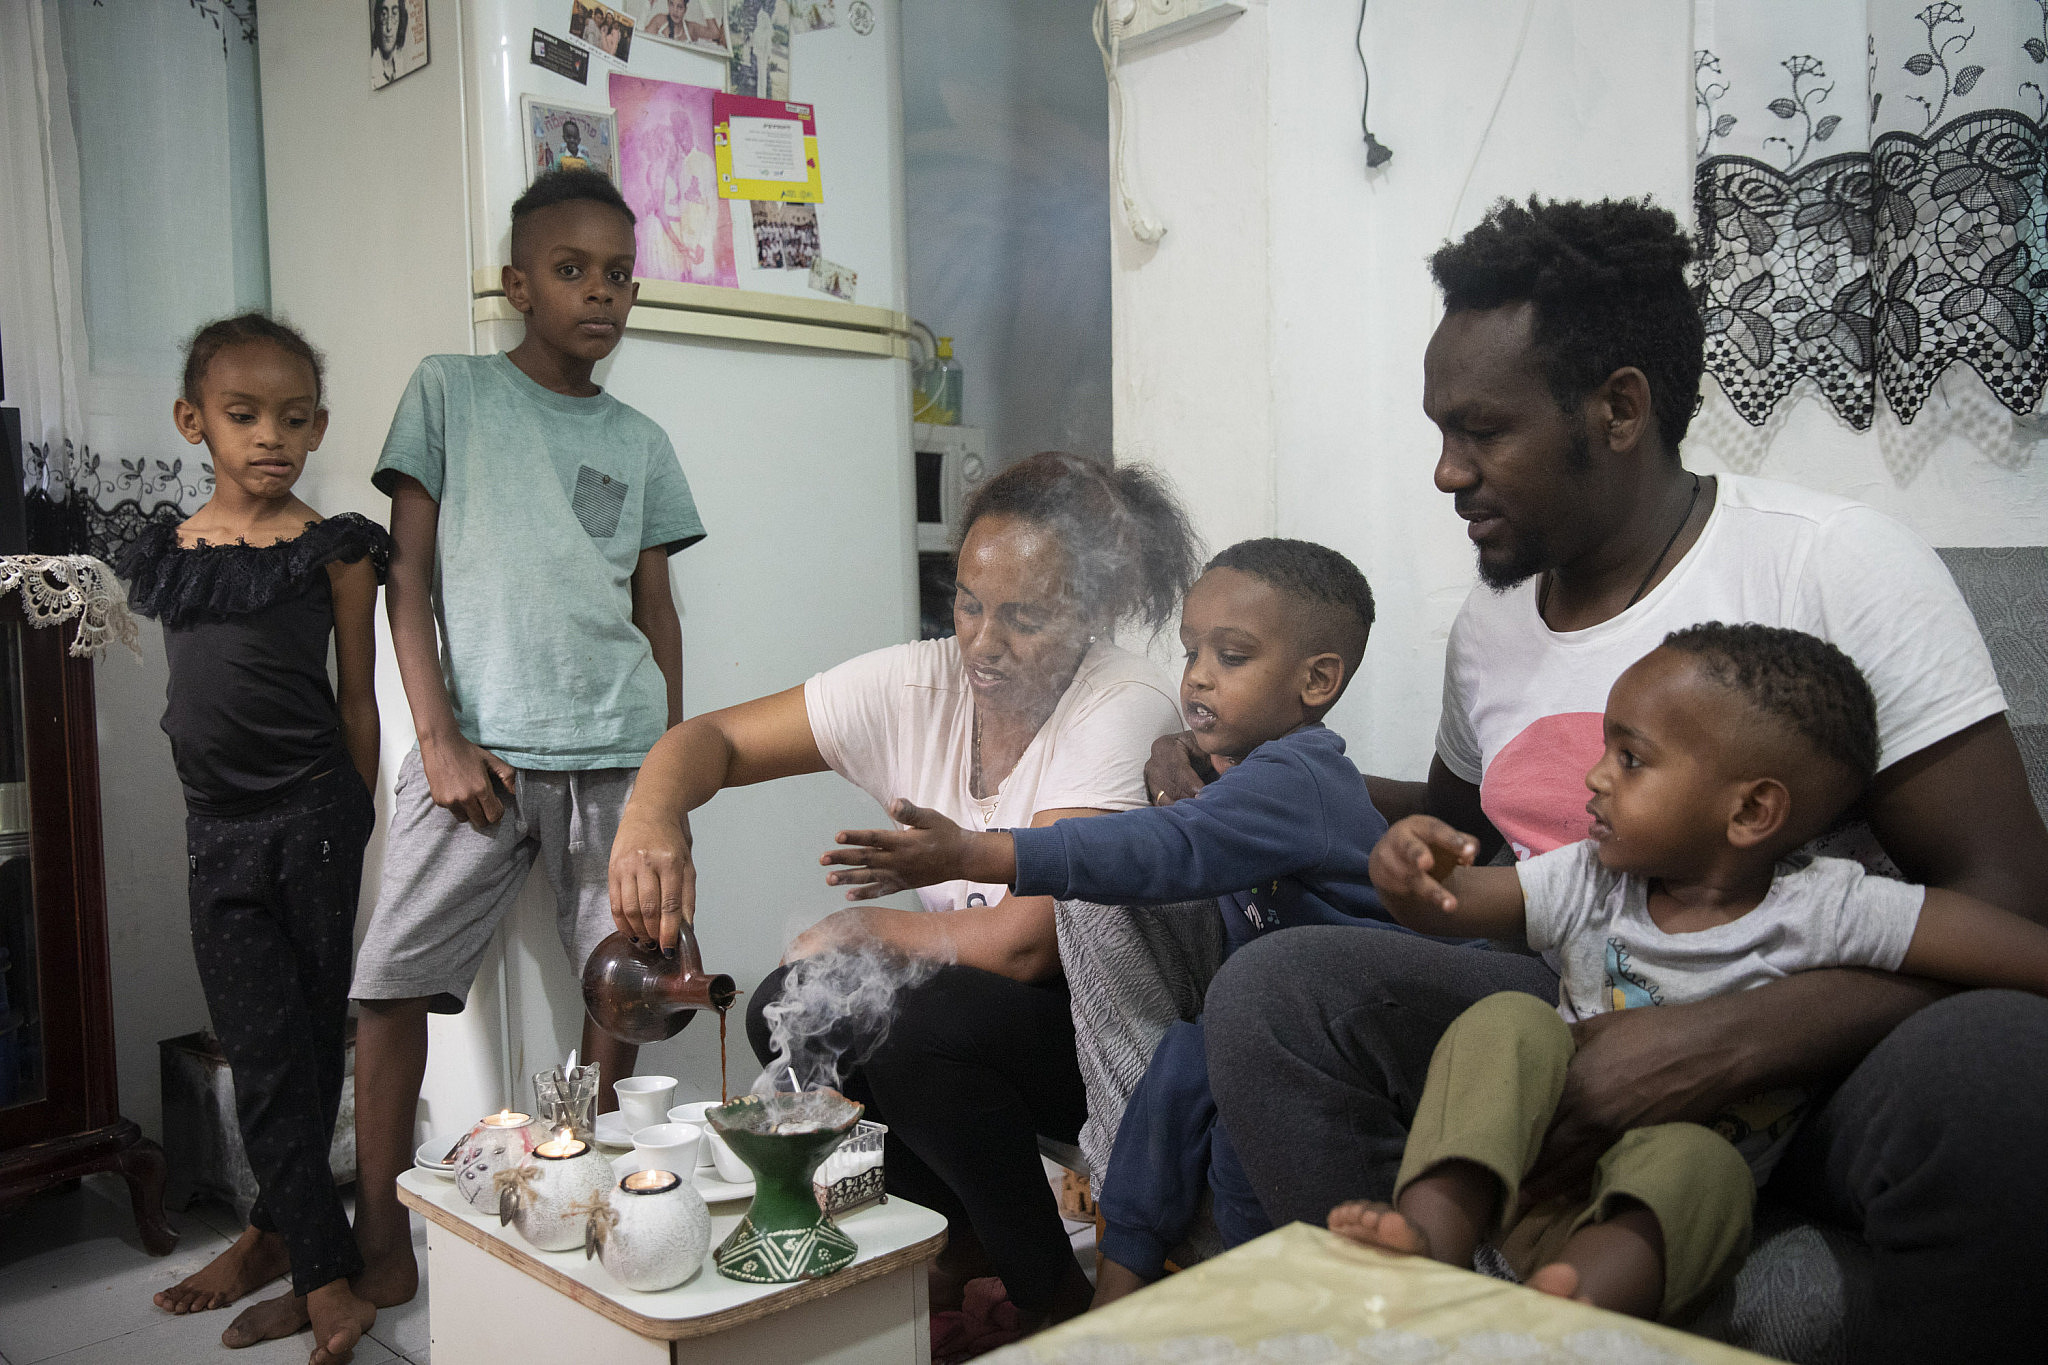 Afwerkei (33), Tsaga (31), and their children Abraham (8), Jerusalem (6), Farzagi (3) and Surrey (2) have been in Israel for 10 years. Prior to the crisis, Afwerkei worked in construction and in a store, while Tsaga worked at a kindergarten. Now they are both unemployed. They live in a studio apartment in south Tel Aviv. (Oren Ziv)